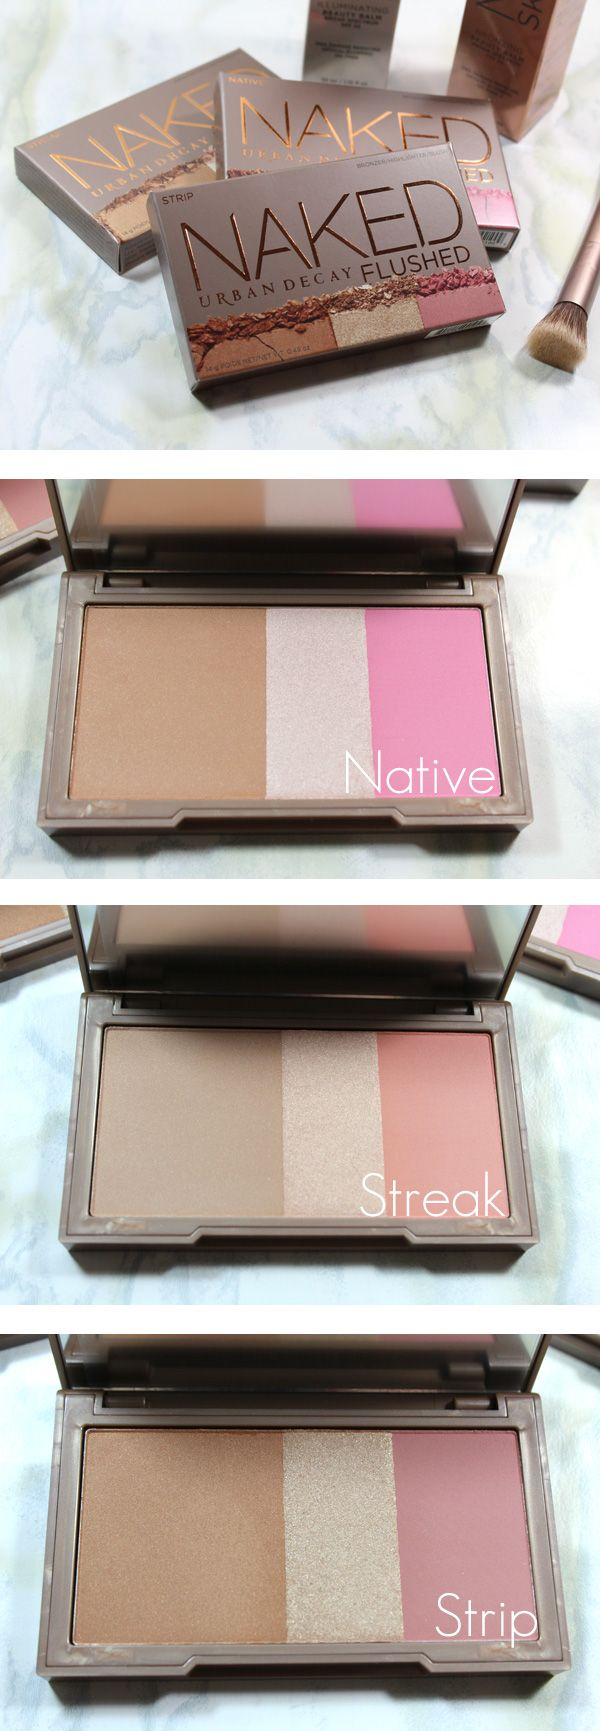 Urban Decay Naked Flush Cheek Palettes via beautifulmakeupsearch.com